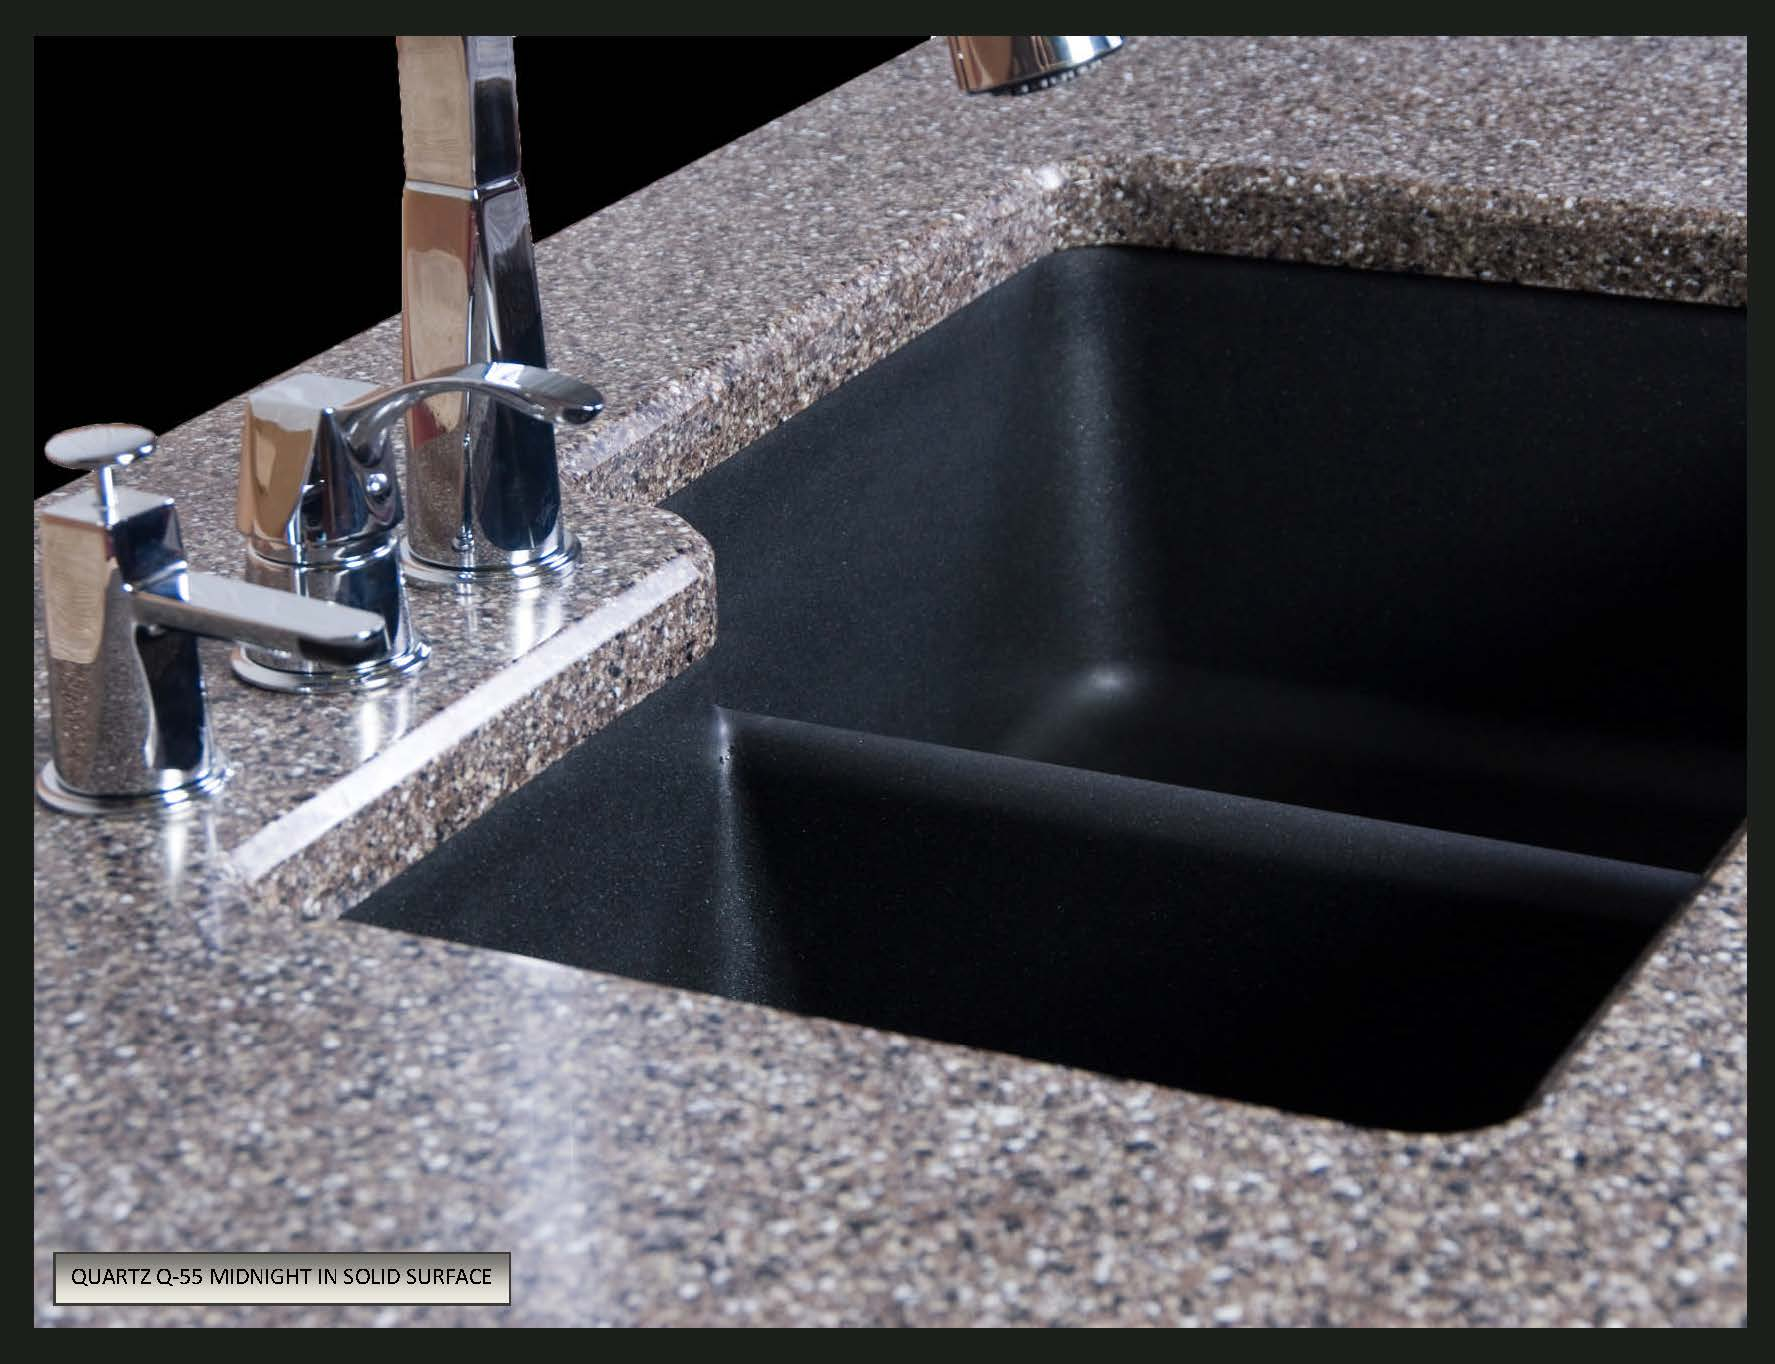 Granite composite sinks pros and cons - Granite Or Quartz Composite Sinks Karran Quartz Undermount Sink